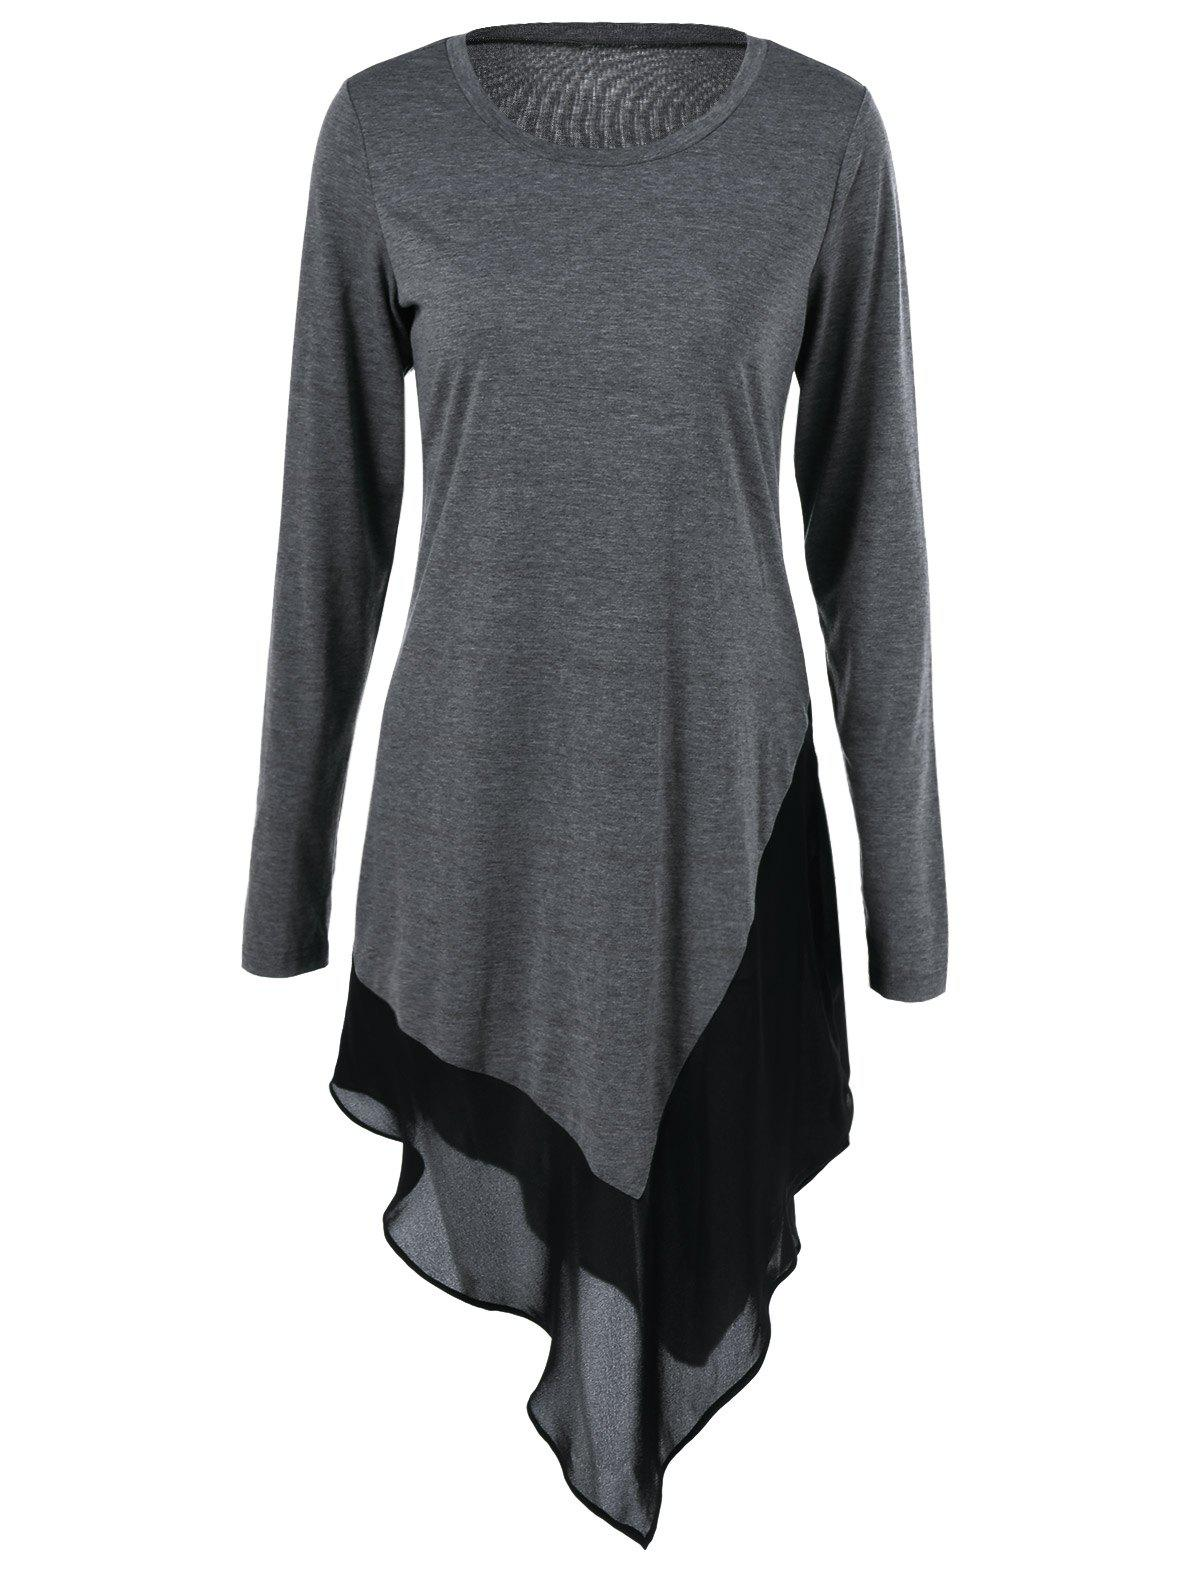 Chiffon Trim Asymmetrical Long Blouse - GRAY L